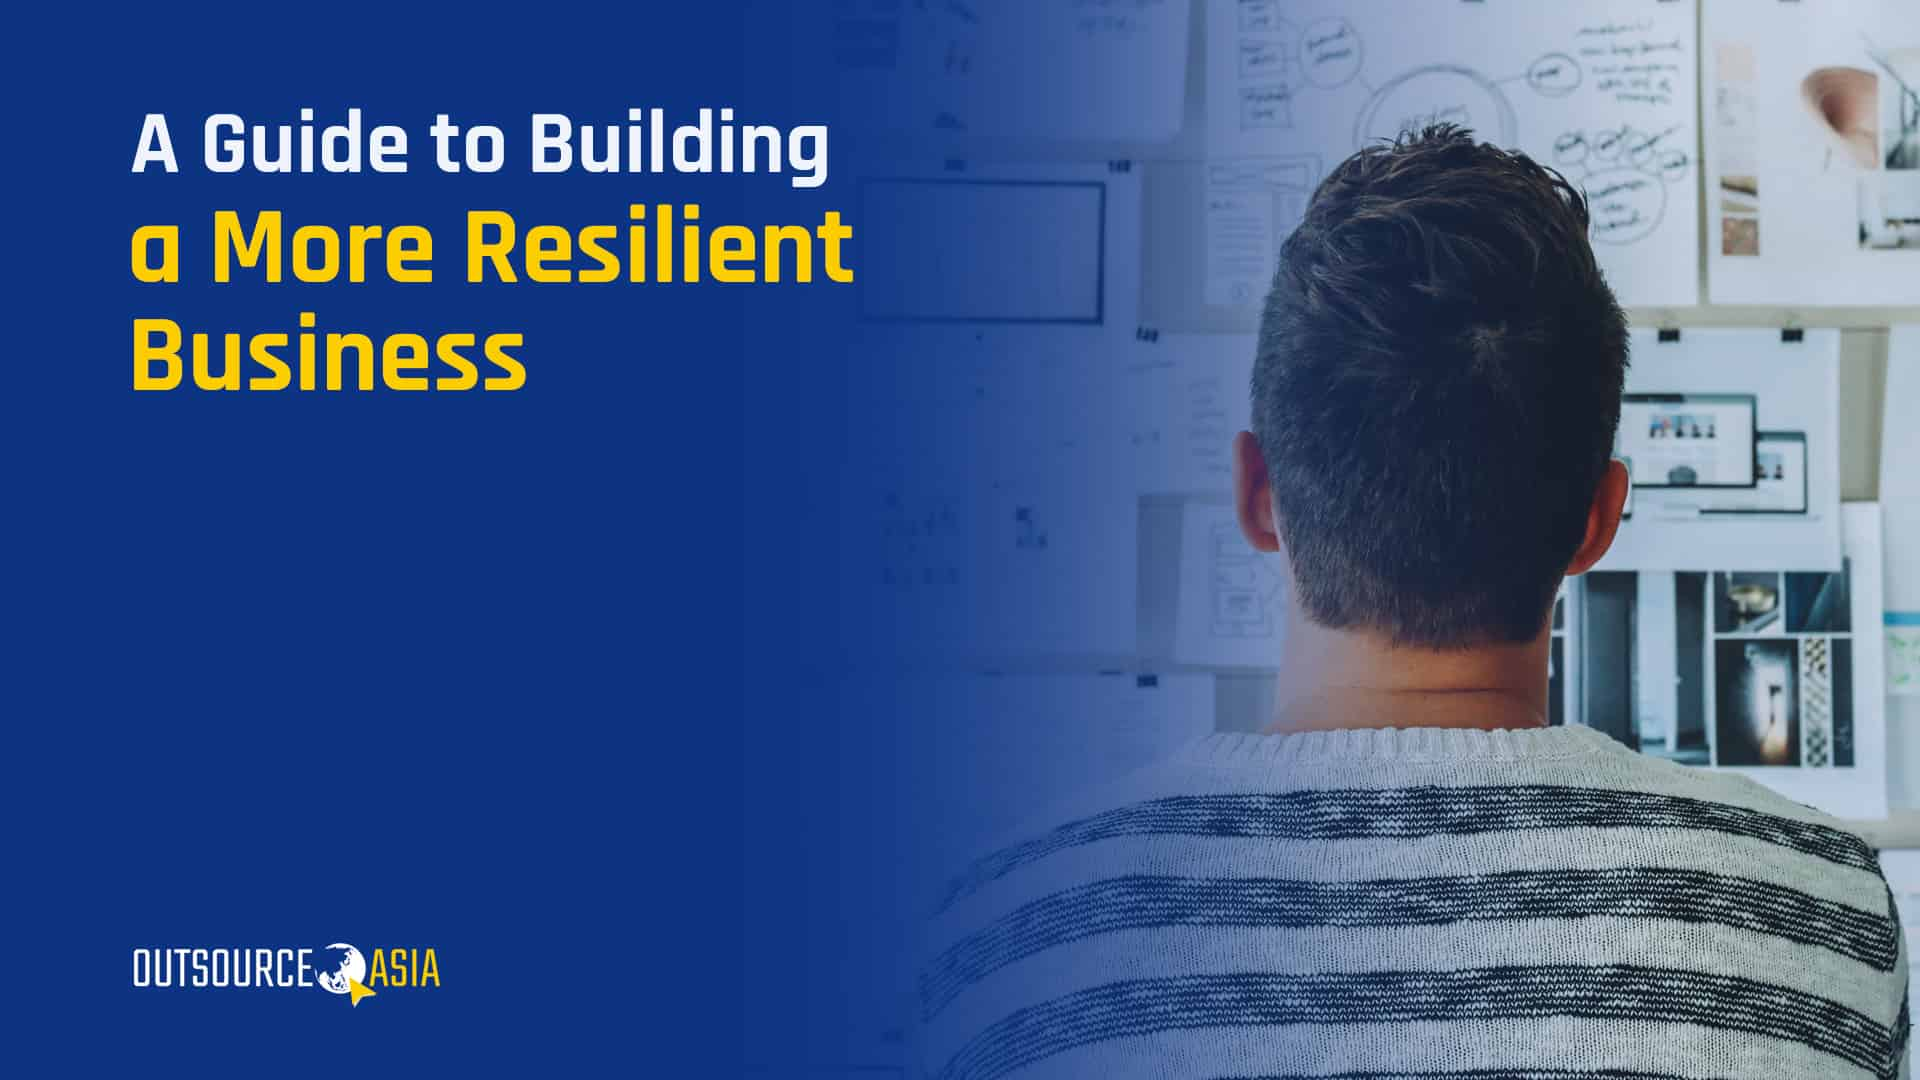 A Guide to Building a More Resilient Business